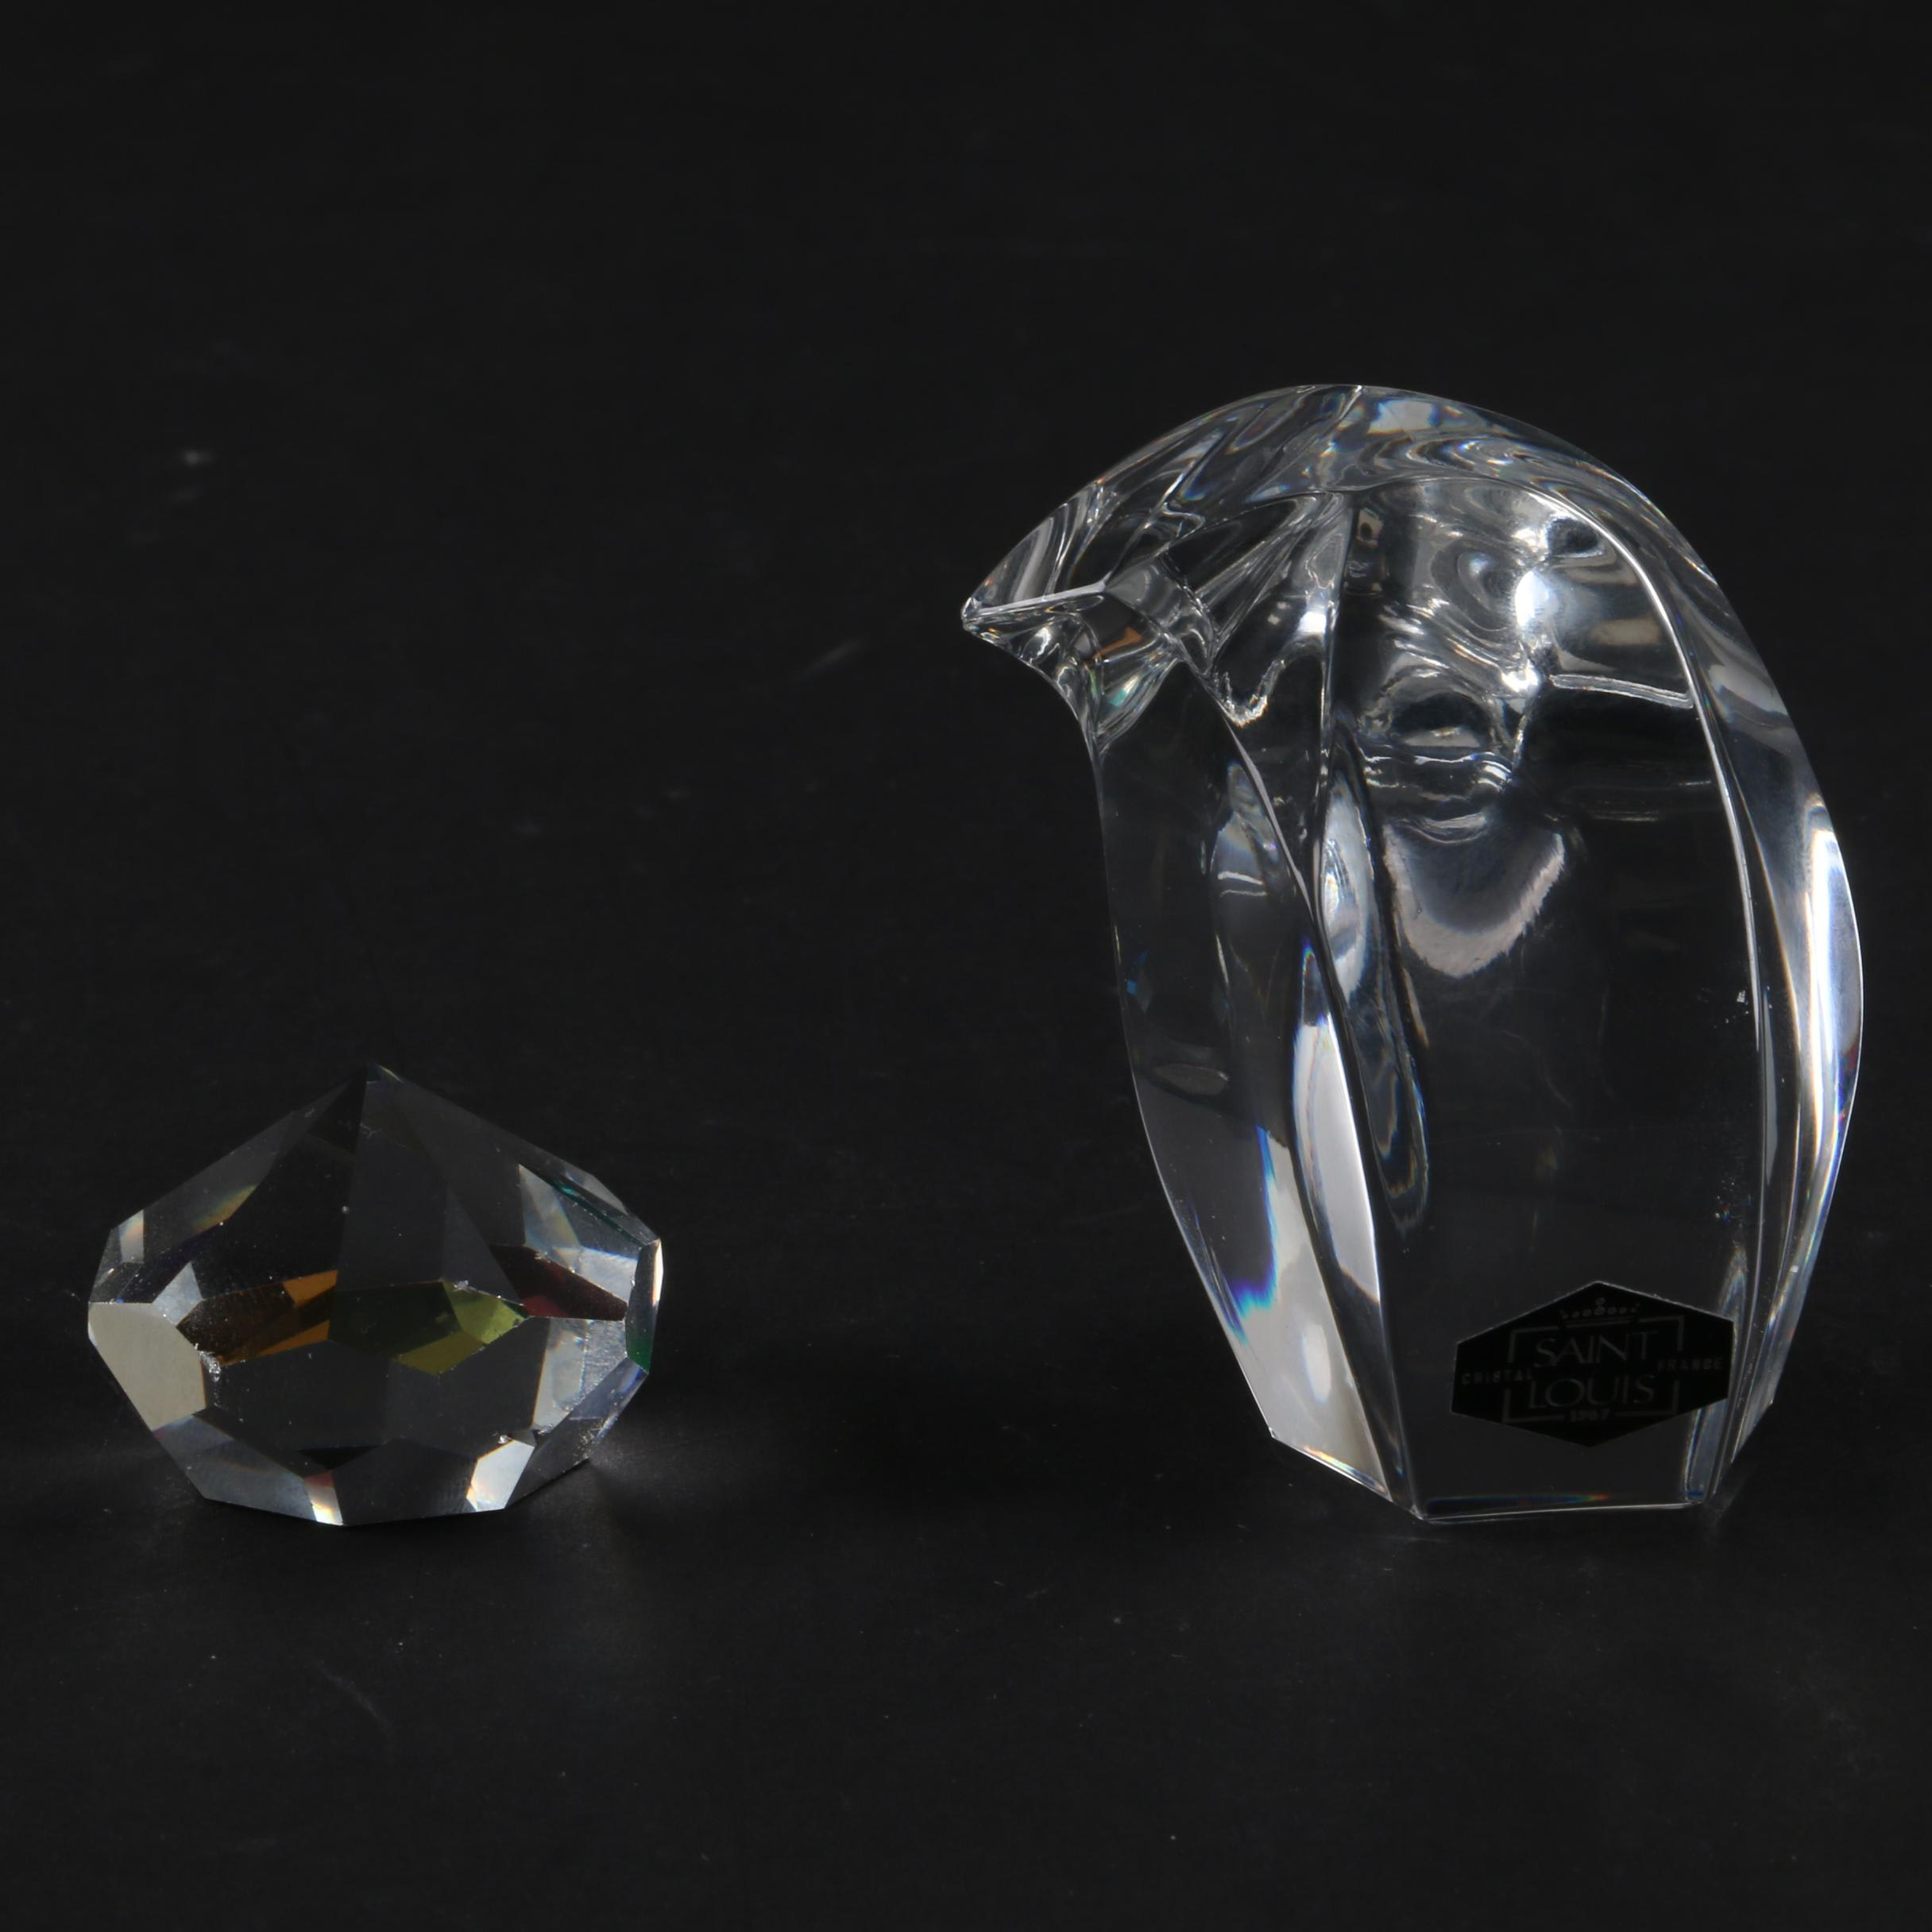 St. Louis France Crystal Penguin Figurine with a Gem Shaped Paperweight